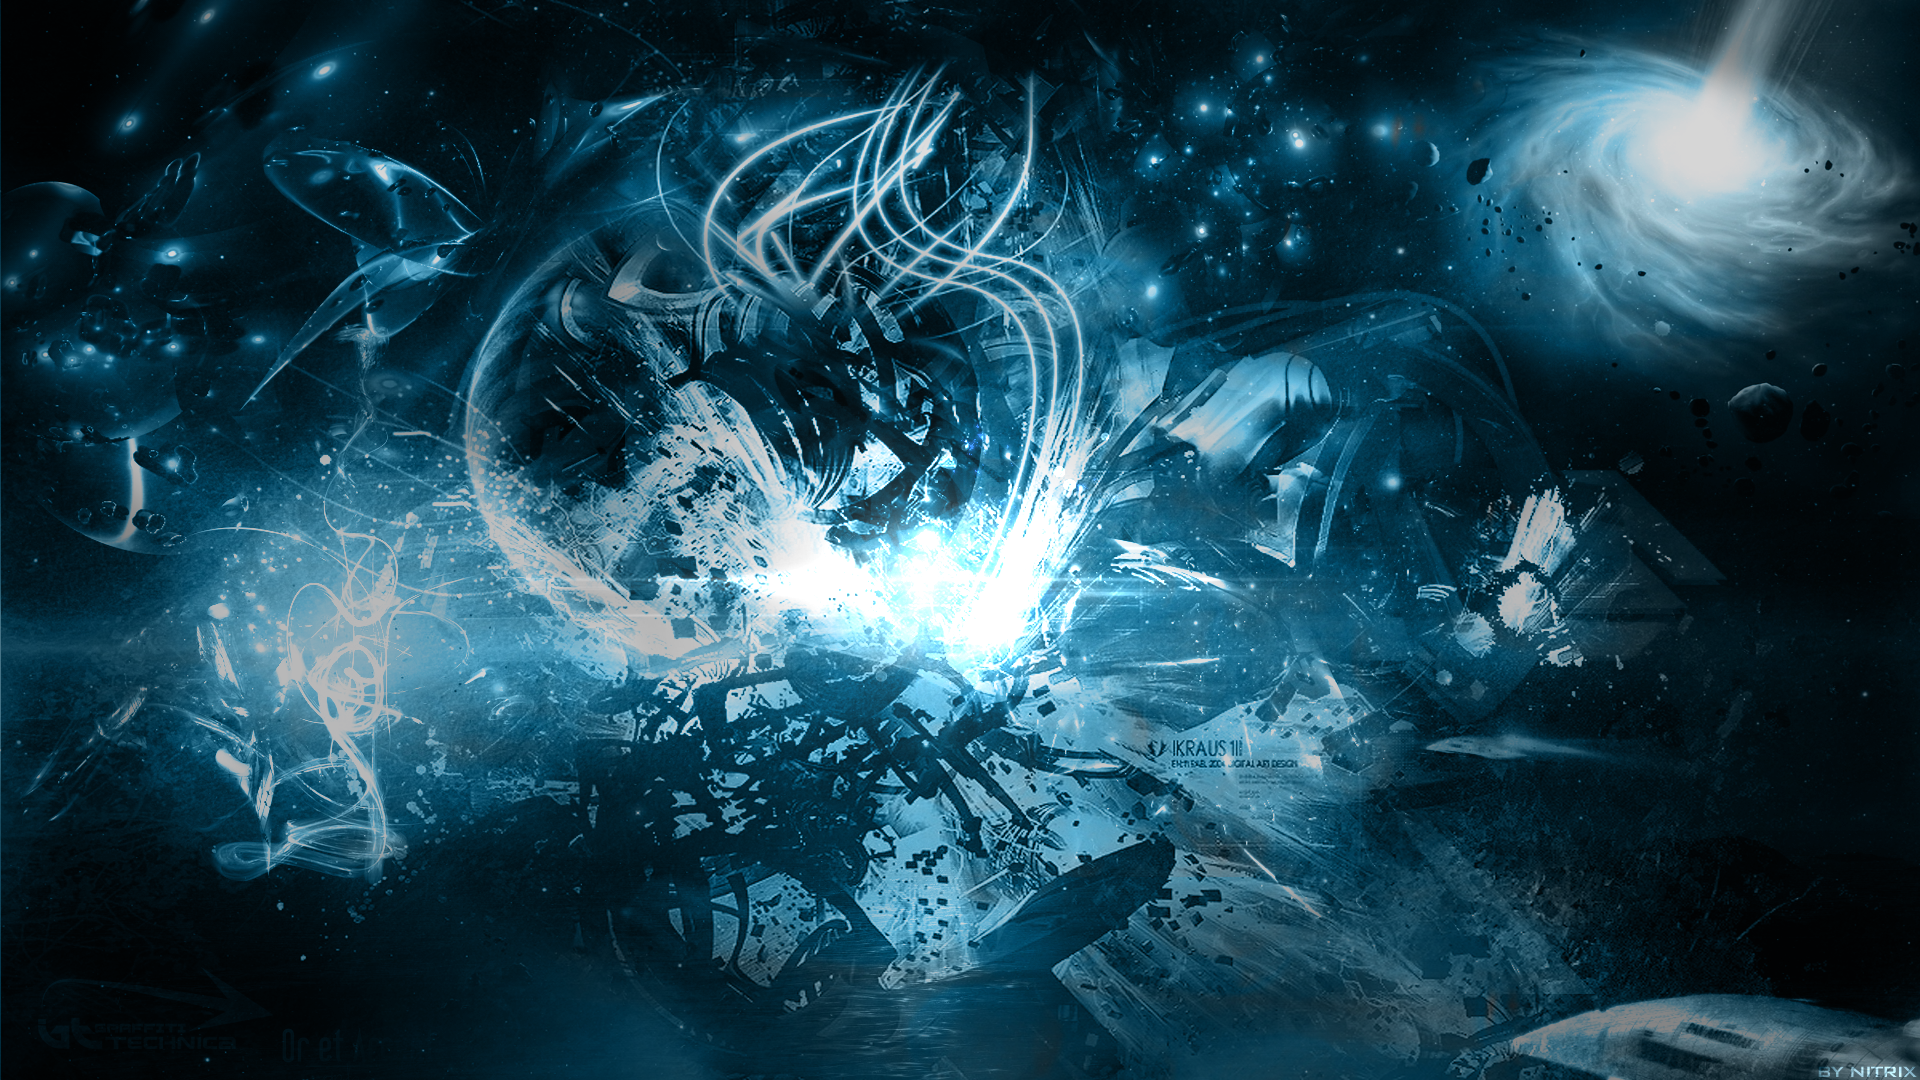 Abstract Space Wallpaper For Windows Kwg 1920 X 1080 Px